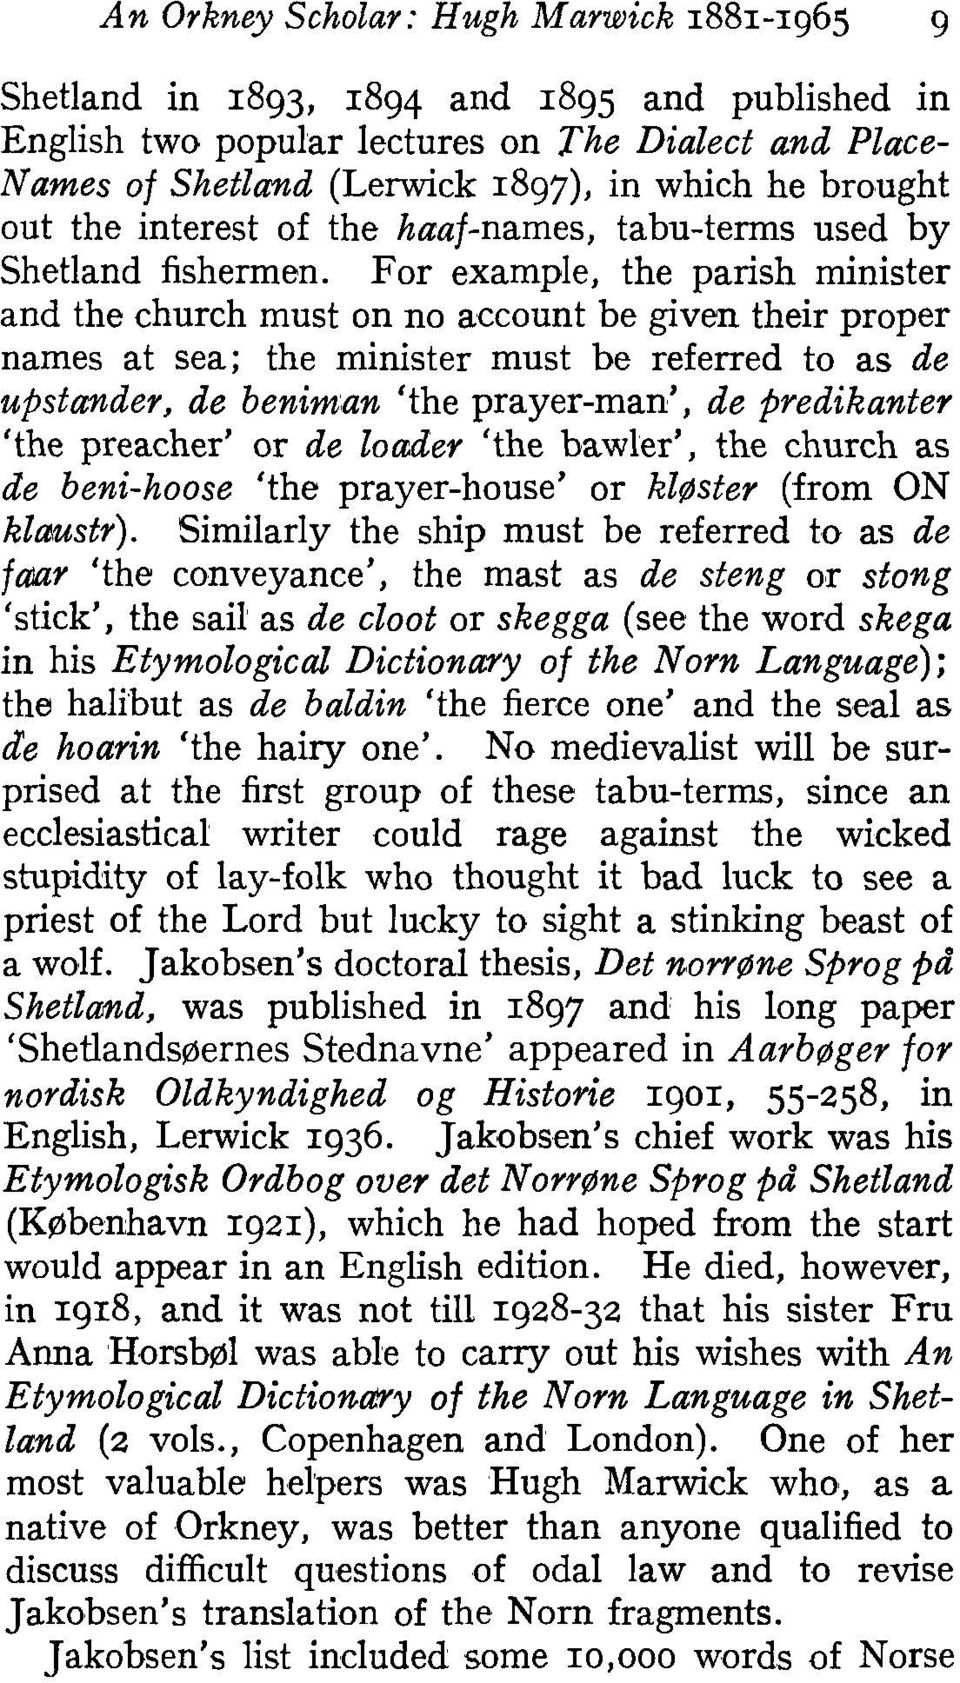 For example, the parish minister and the church must on no account be given their proper names at sea; the minister must be referred to as de upsiander, de beniman 'the prayer-man', de predikanter